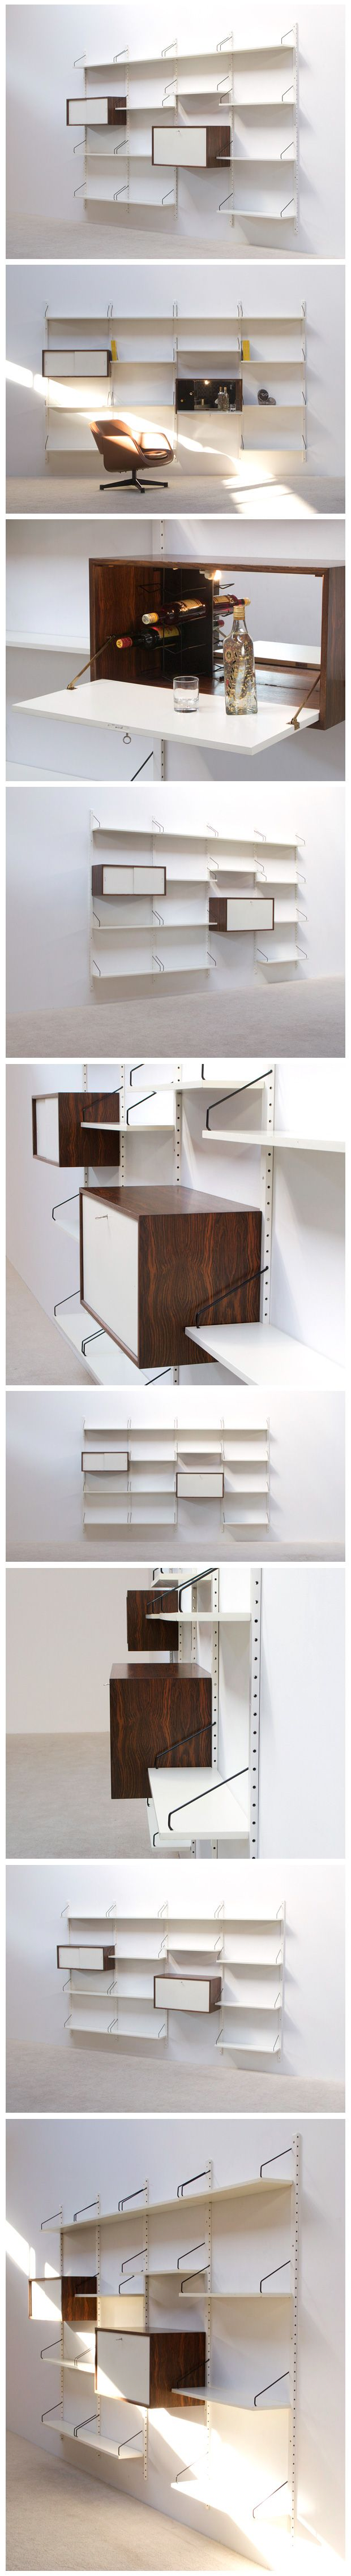 best 25+ modular shelving ideas on pinterest | plywood bookcase